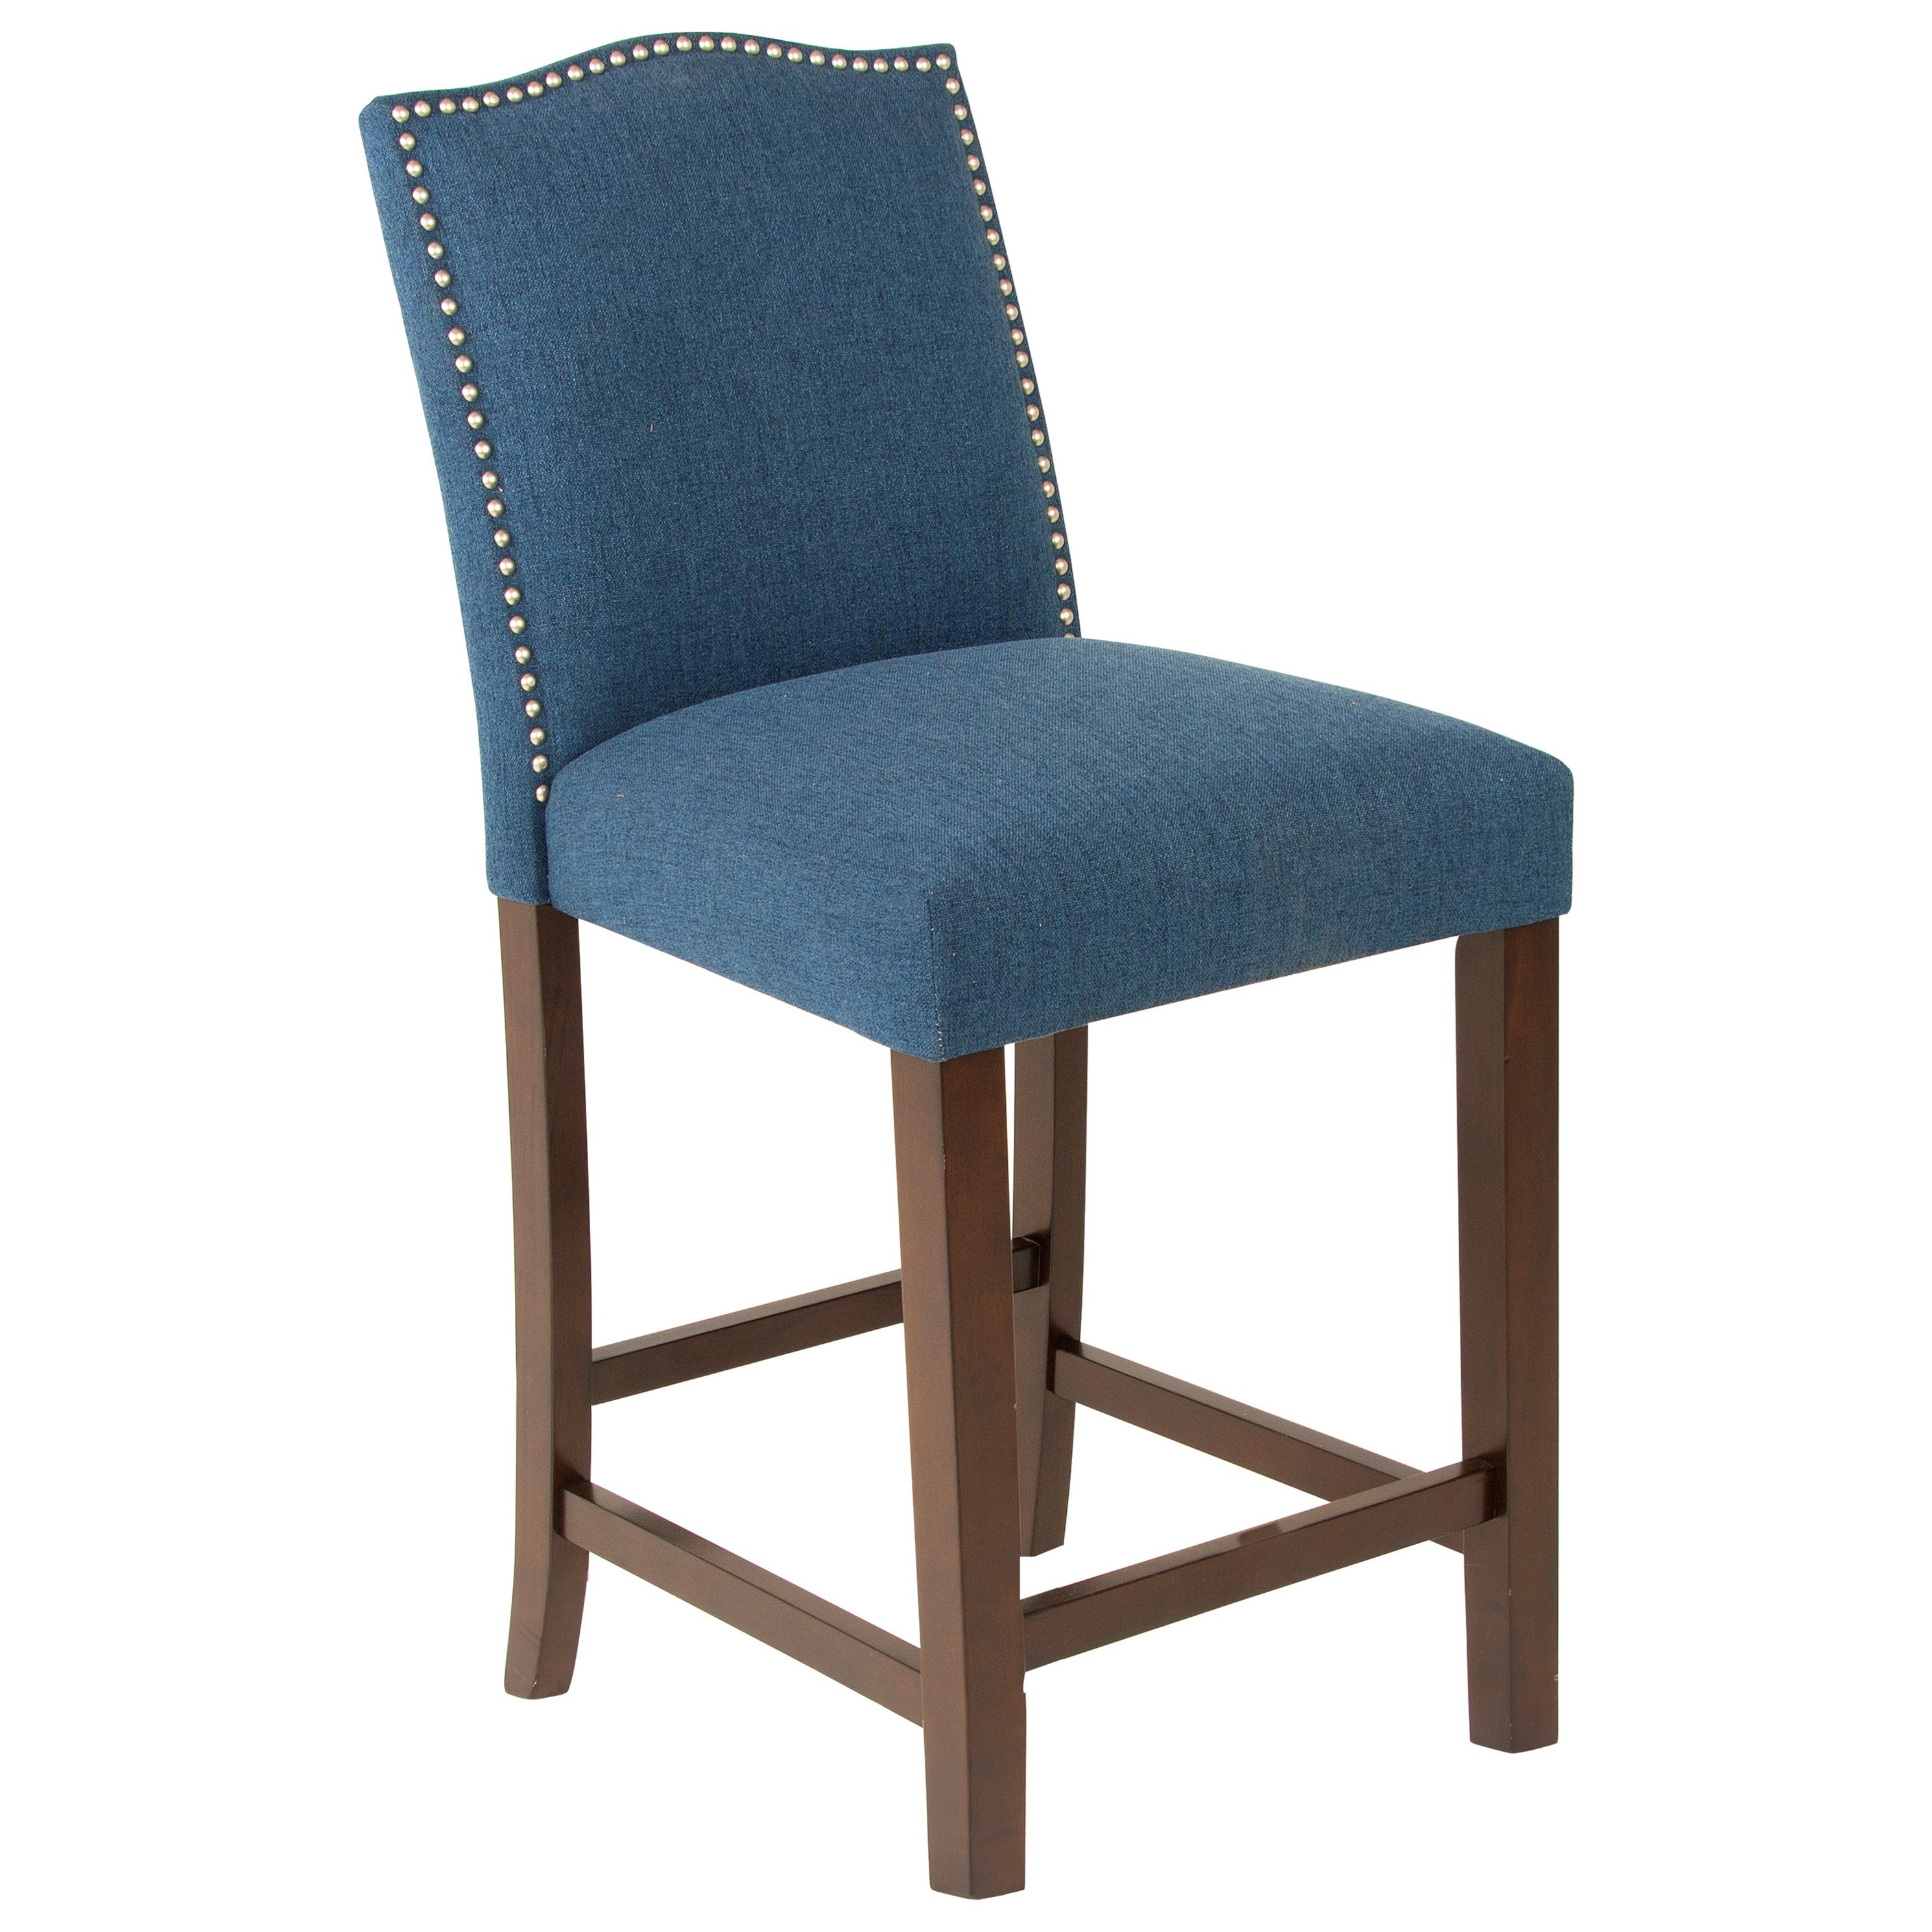 Elden Upholstered Counter Chair by Steve Silver at Walker's Furniture